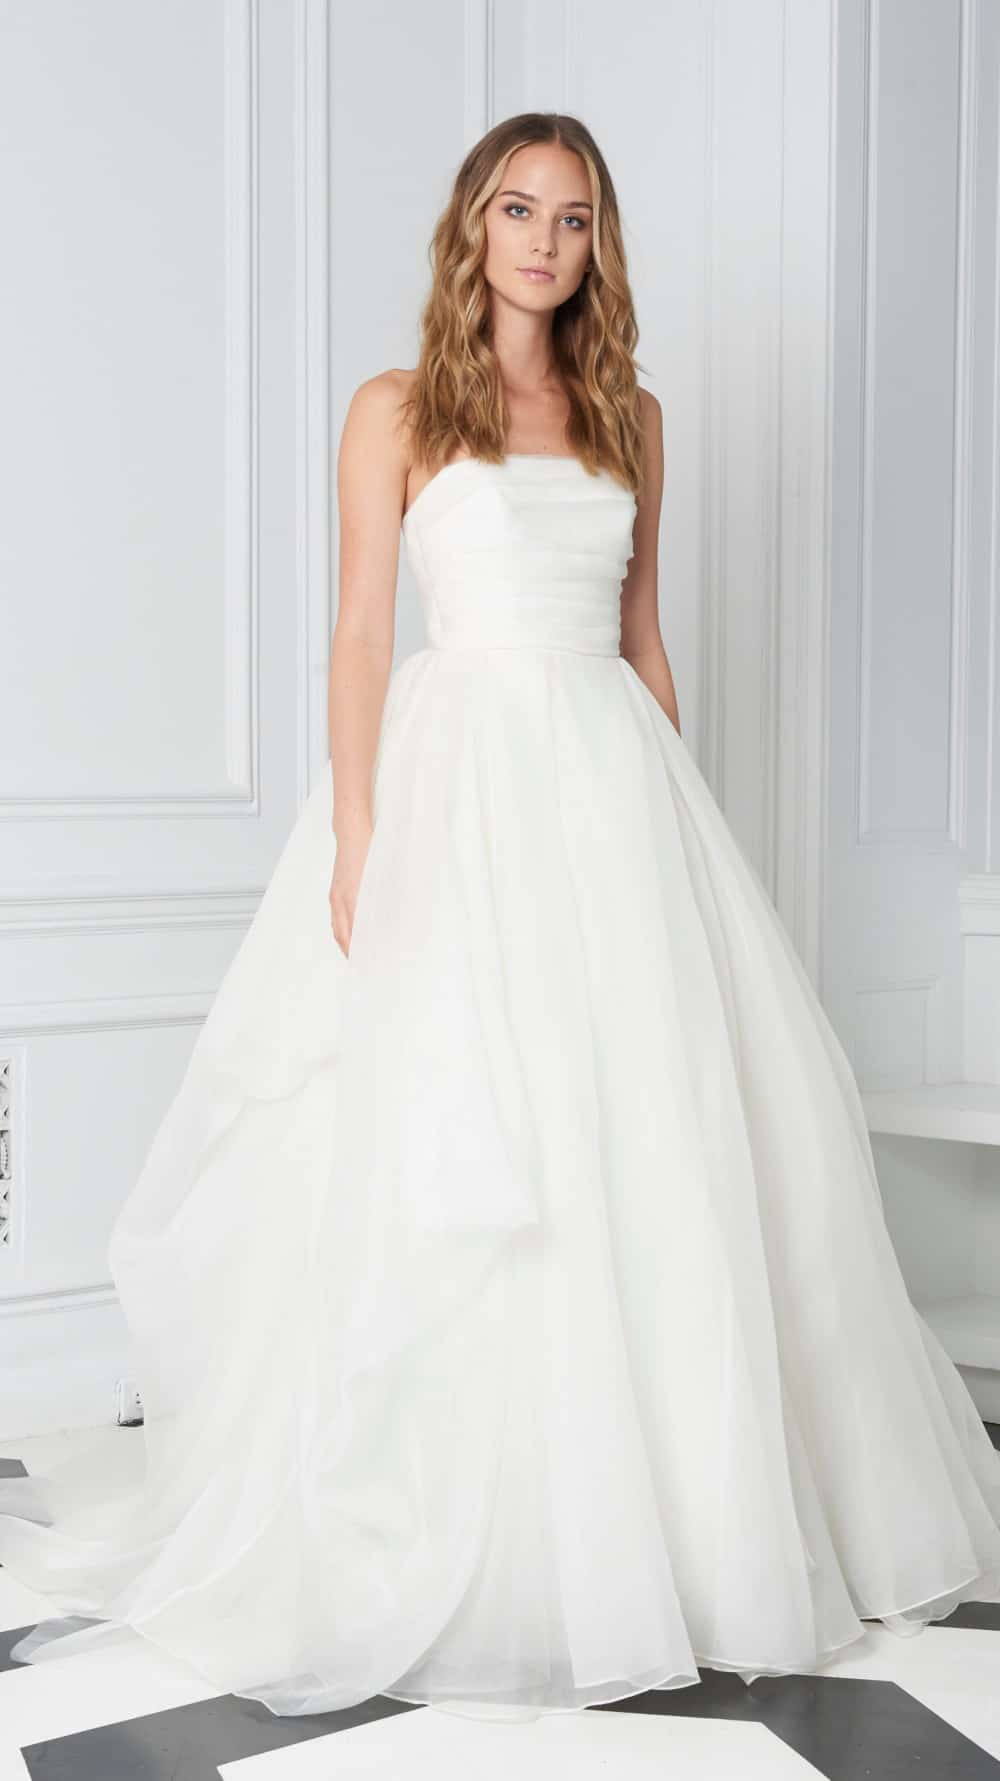 strapless ball gown wedding dress bliss monique lhuillier fall 2018